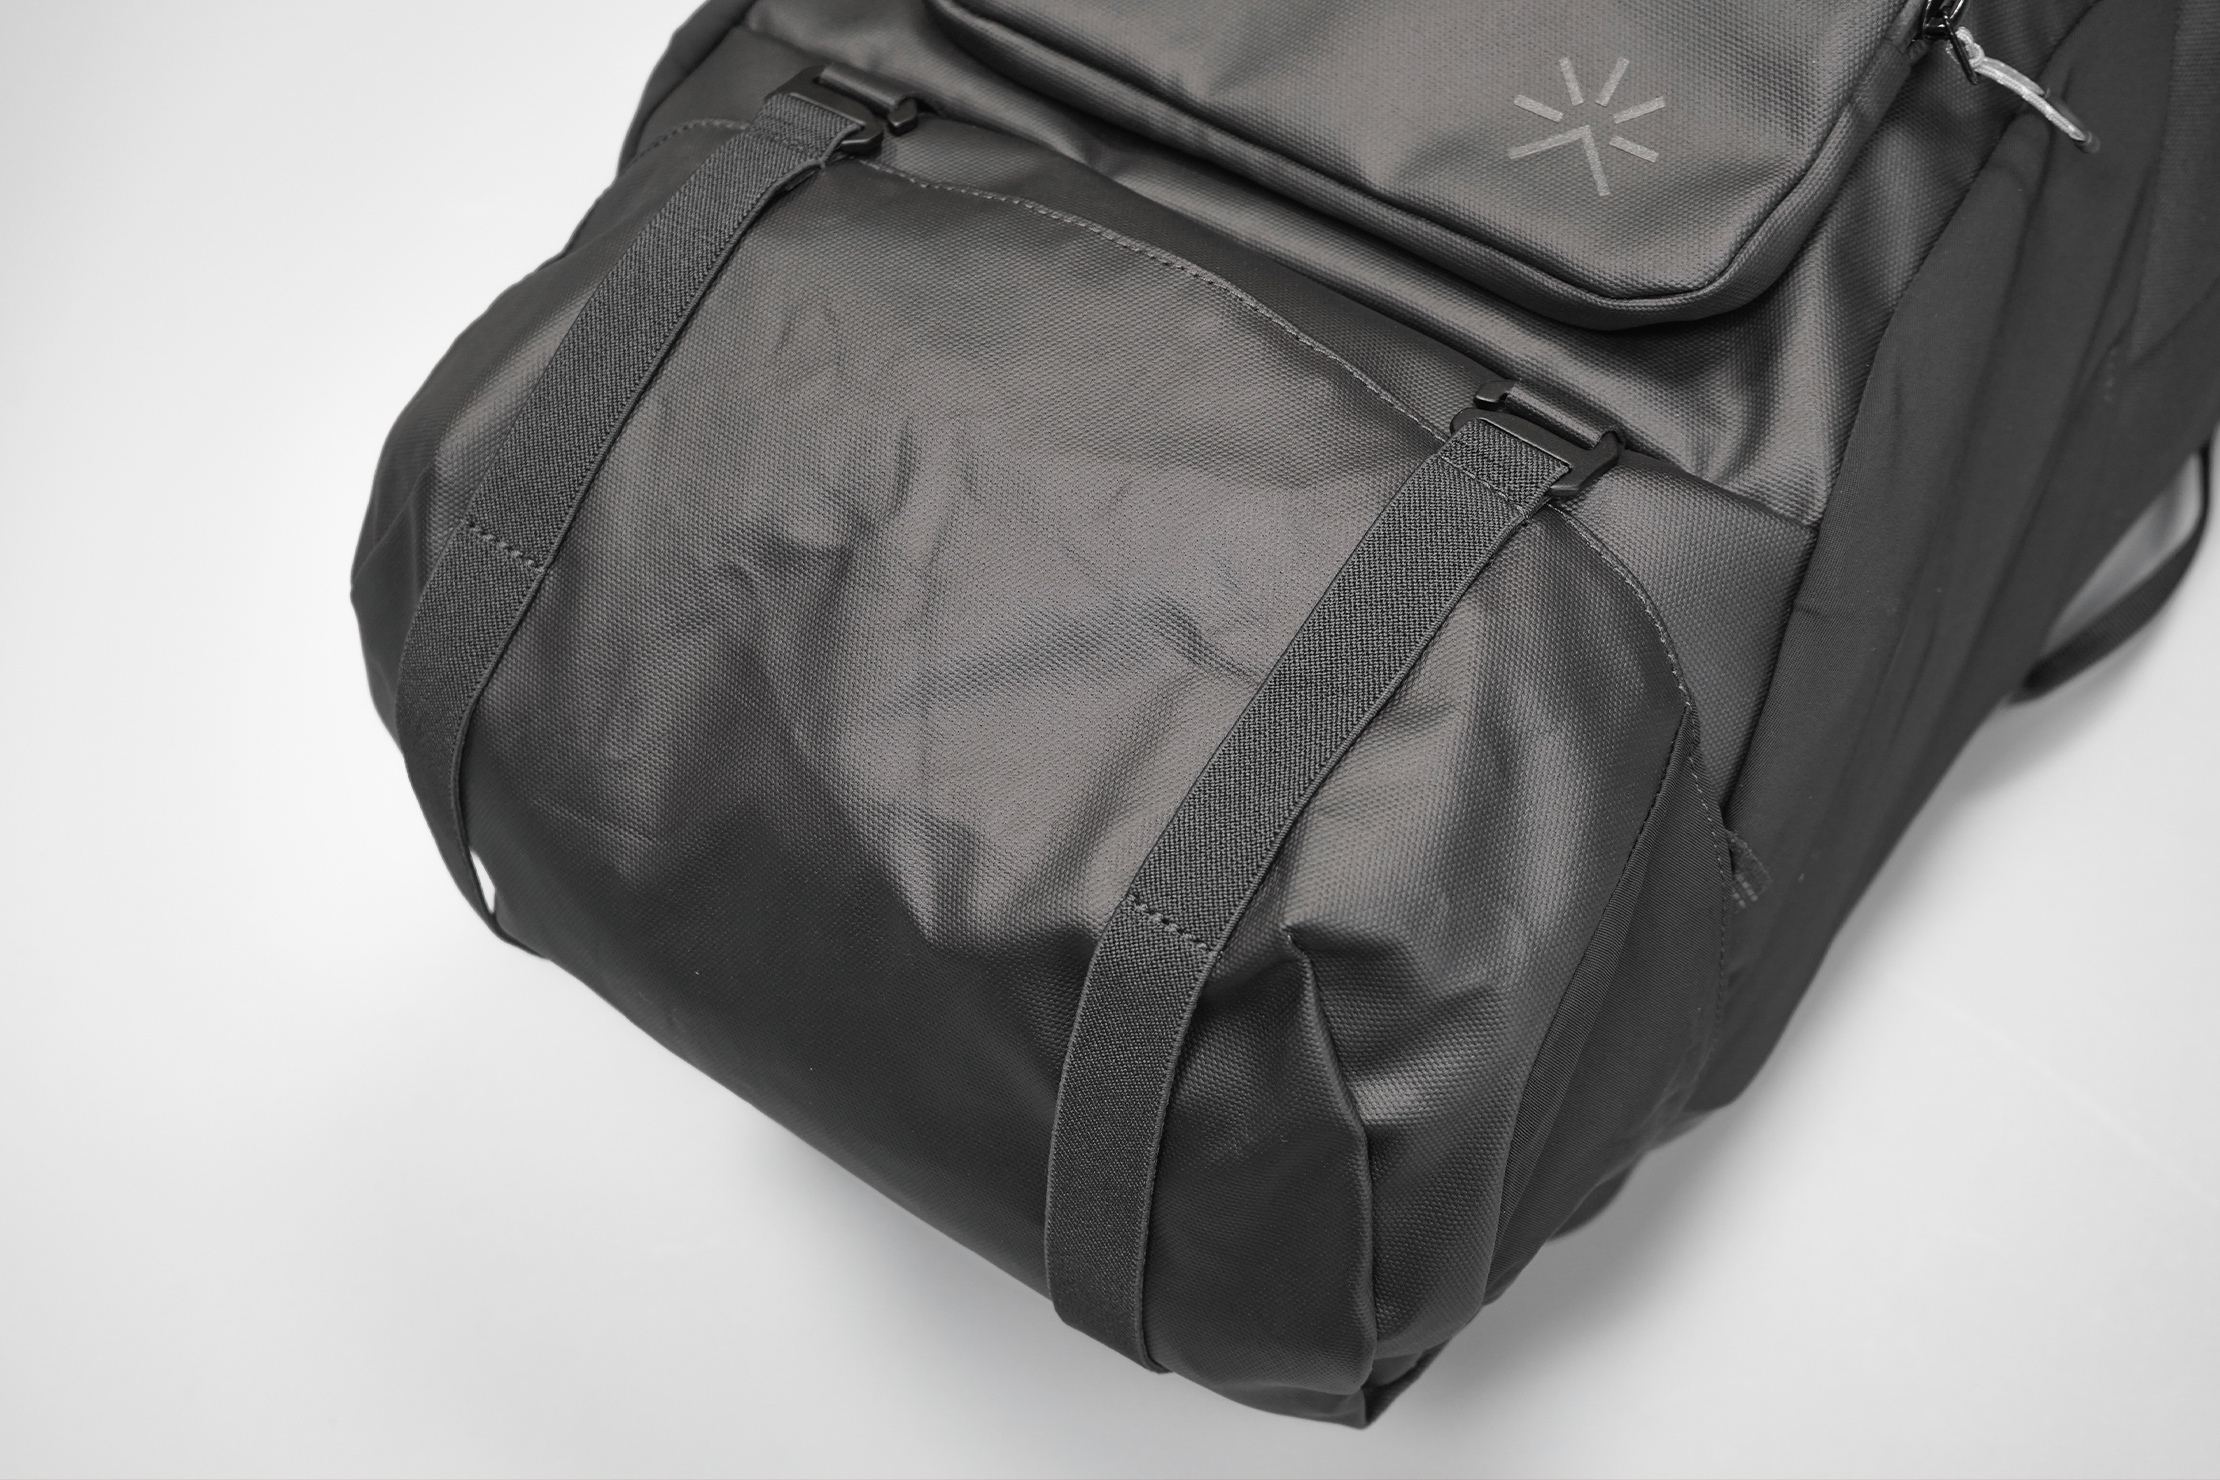 Tropicfeel Shell Travel Backpack | The kangaroo pouch can keep dirty shoes away—though no joeys are involved